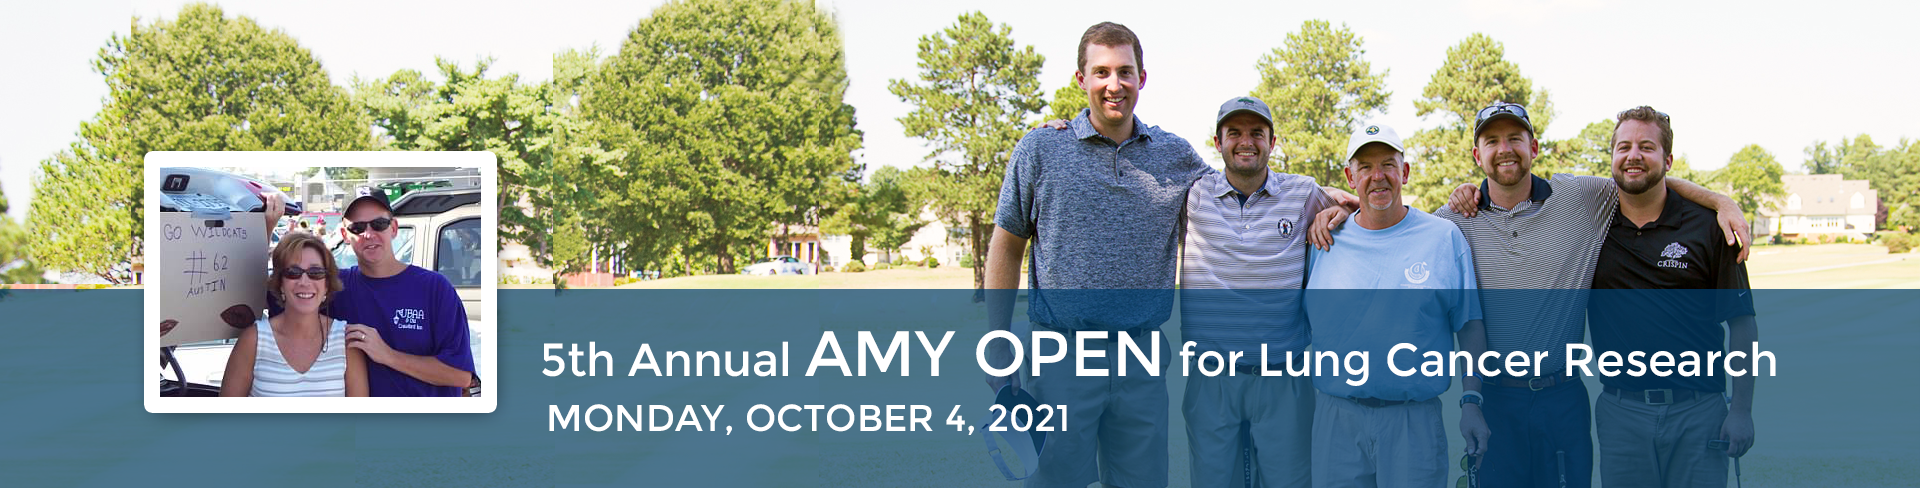 5th Annual Amy Open